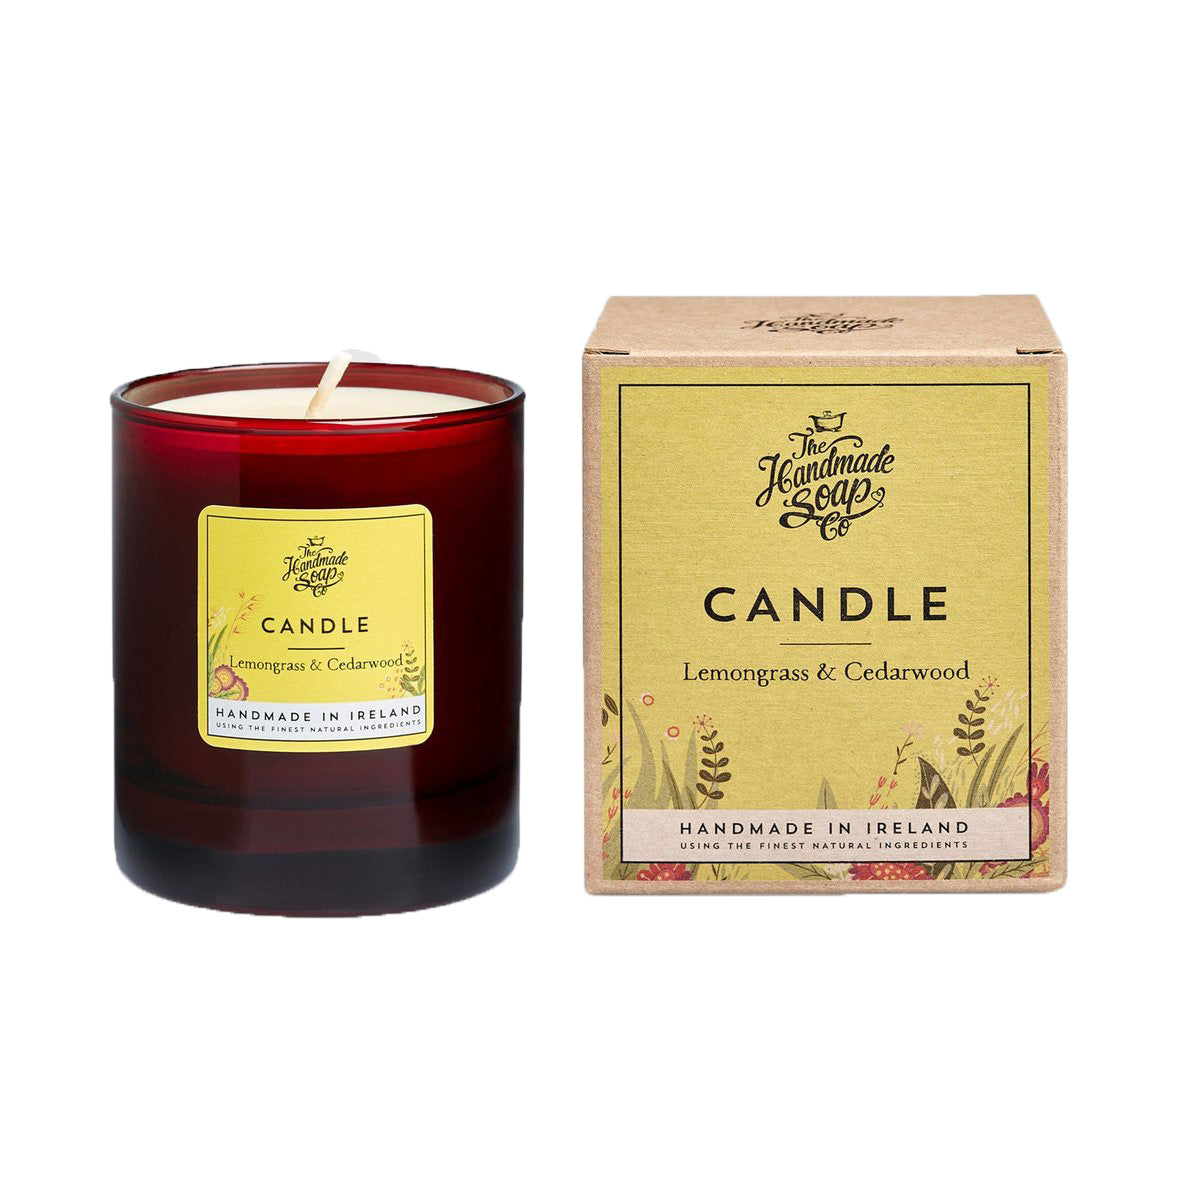 Citronella and Cedarwood Candle